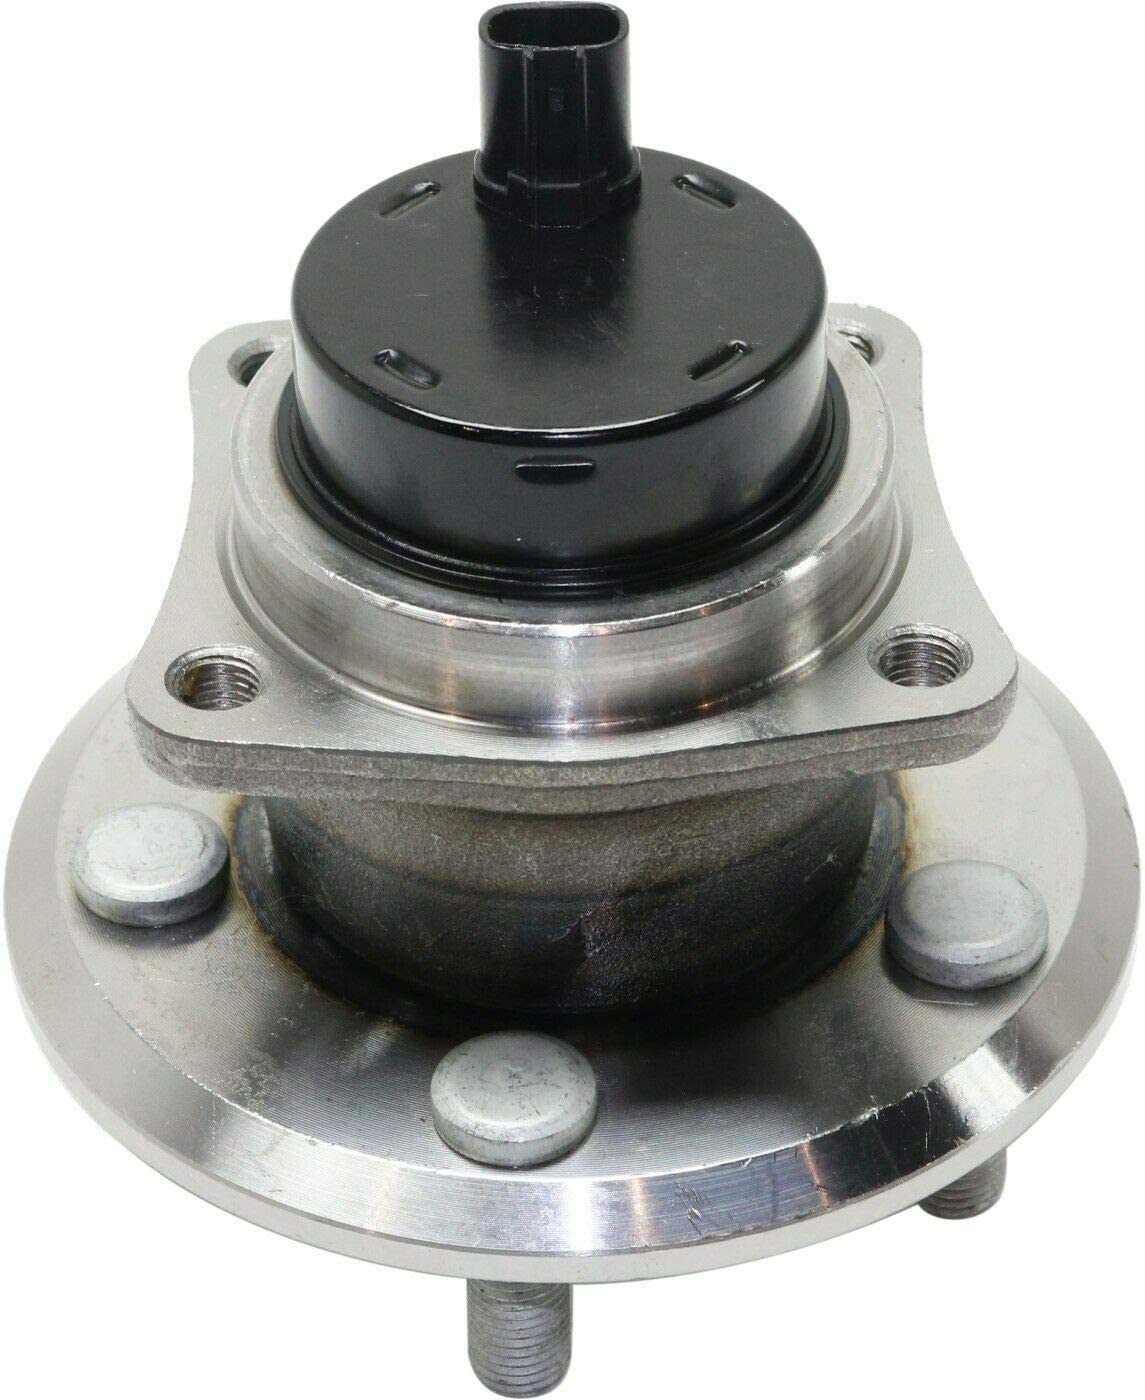 Outlet sale feature Kucaruce 1pc mart Rear Left+Right Driver+Passenger and Hub Side Wheel